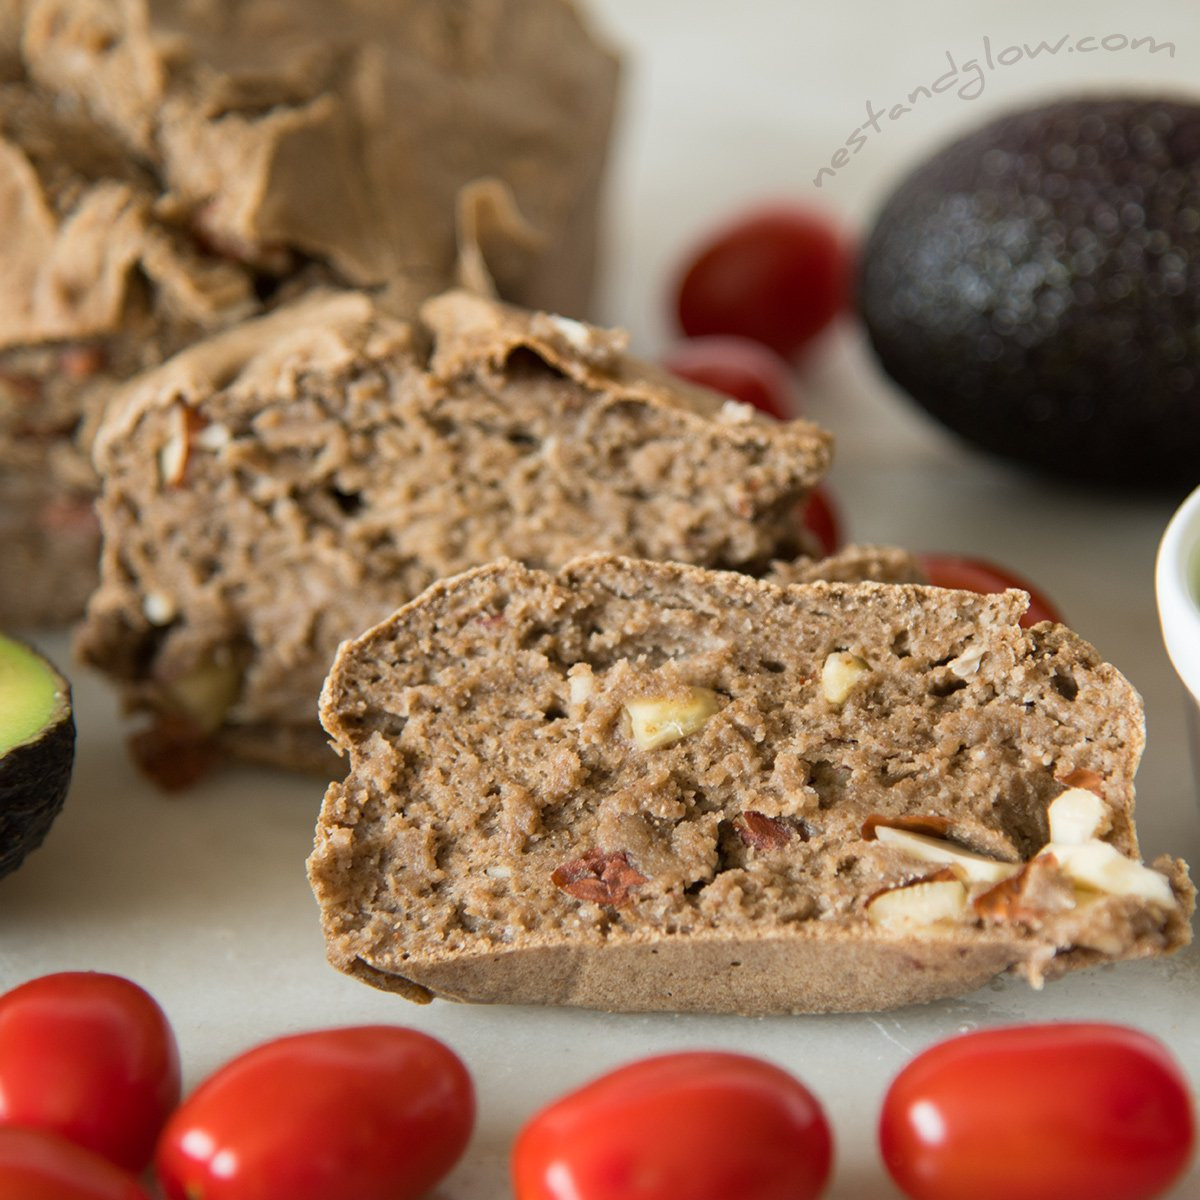 Healthy Gluten Free Bread  3 Ingre nt Gluten Free Buckwheat Bread Recipe [High